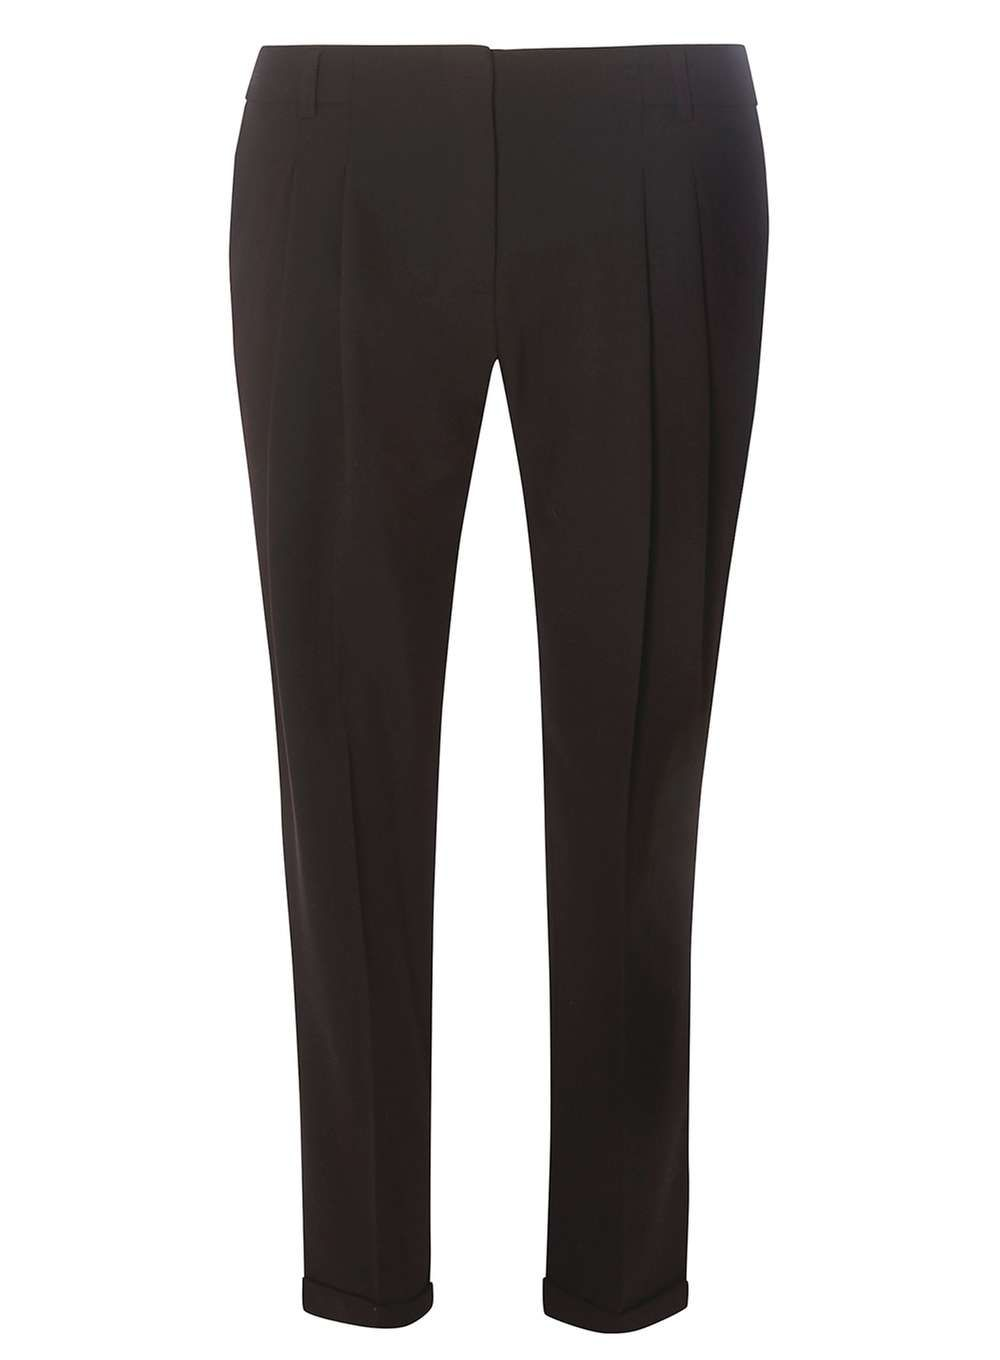 Dorothy Perkins Womens Black Pleat Naples Trousers- Black Black double pleat naples peg trouser. 76% Polyester,19% Viscose,5% Elastane. Machine washable. http://www.MightGet.com/january-2017-13/dorothy-perkins-womens-black-pleat-naples-trousers-black.asp